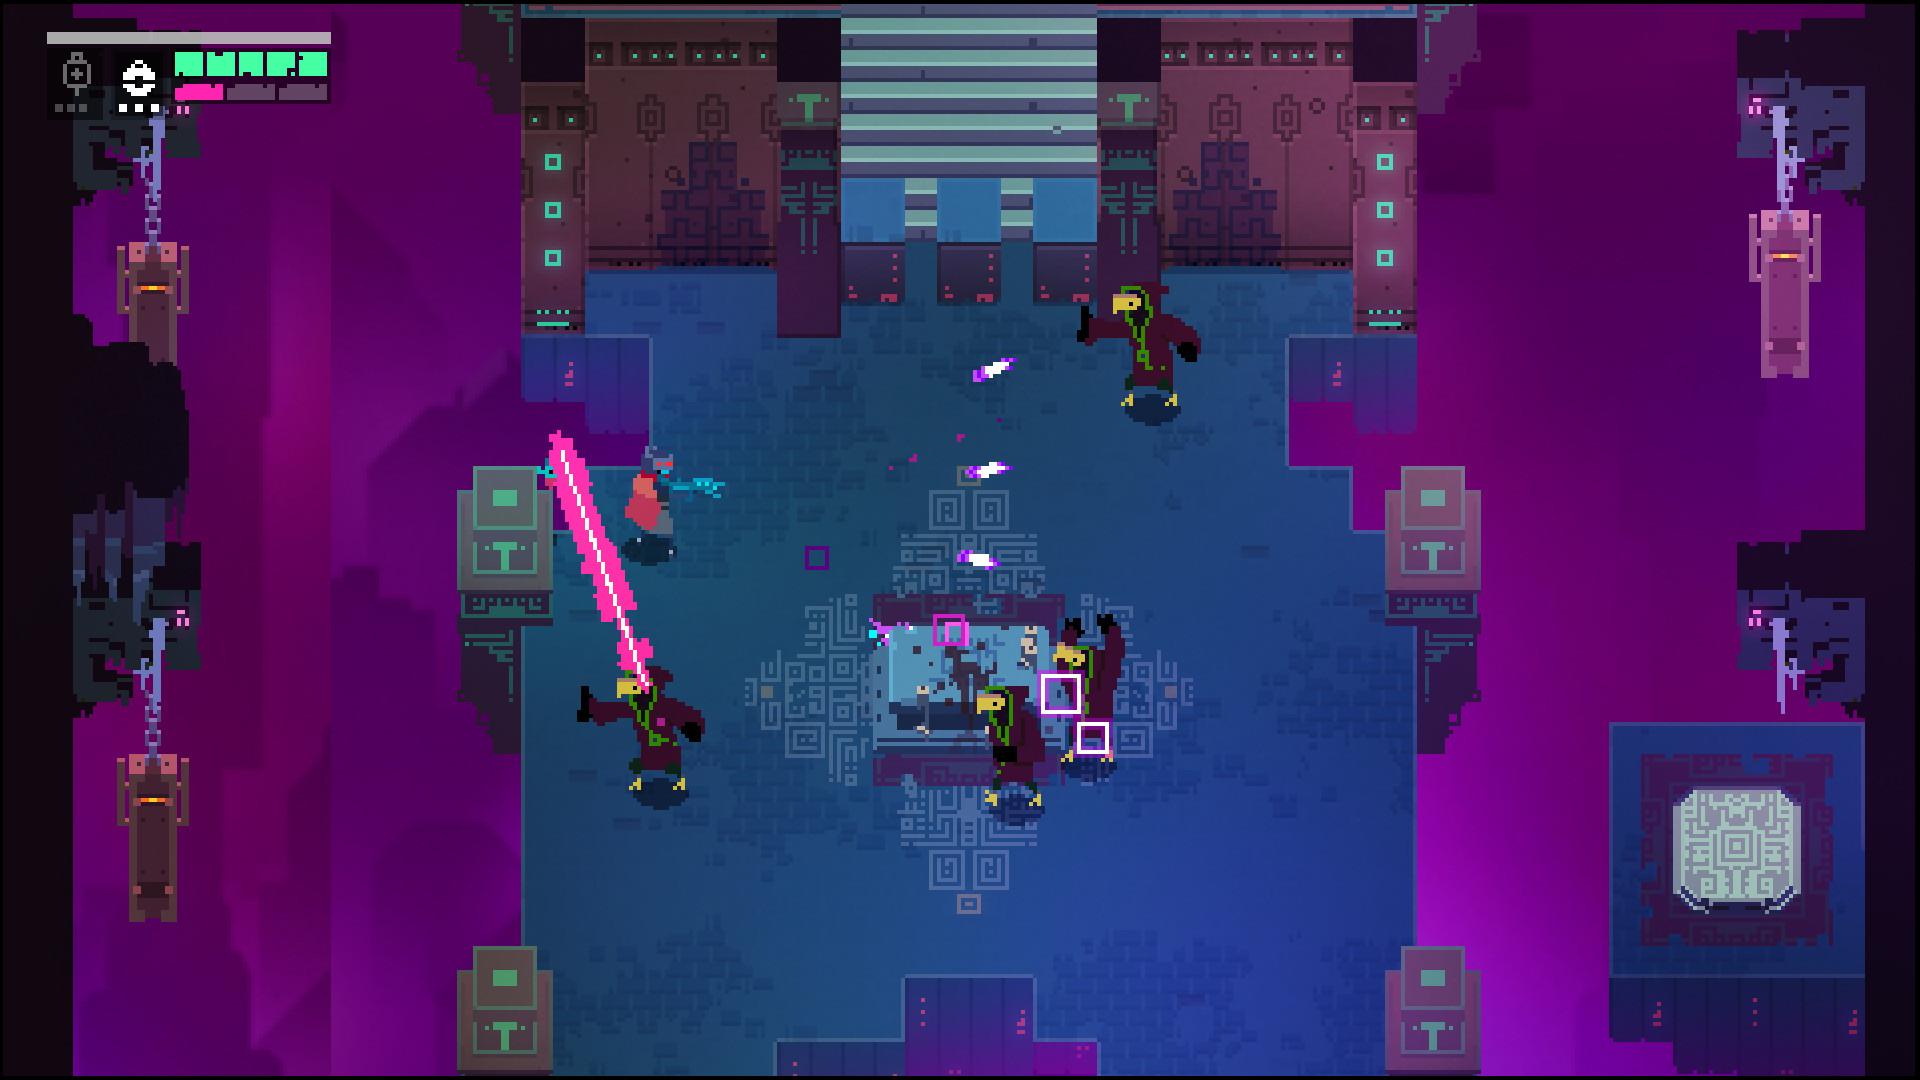 Hyper Light Drifter's purple highlight